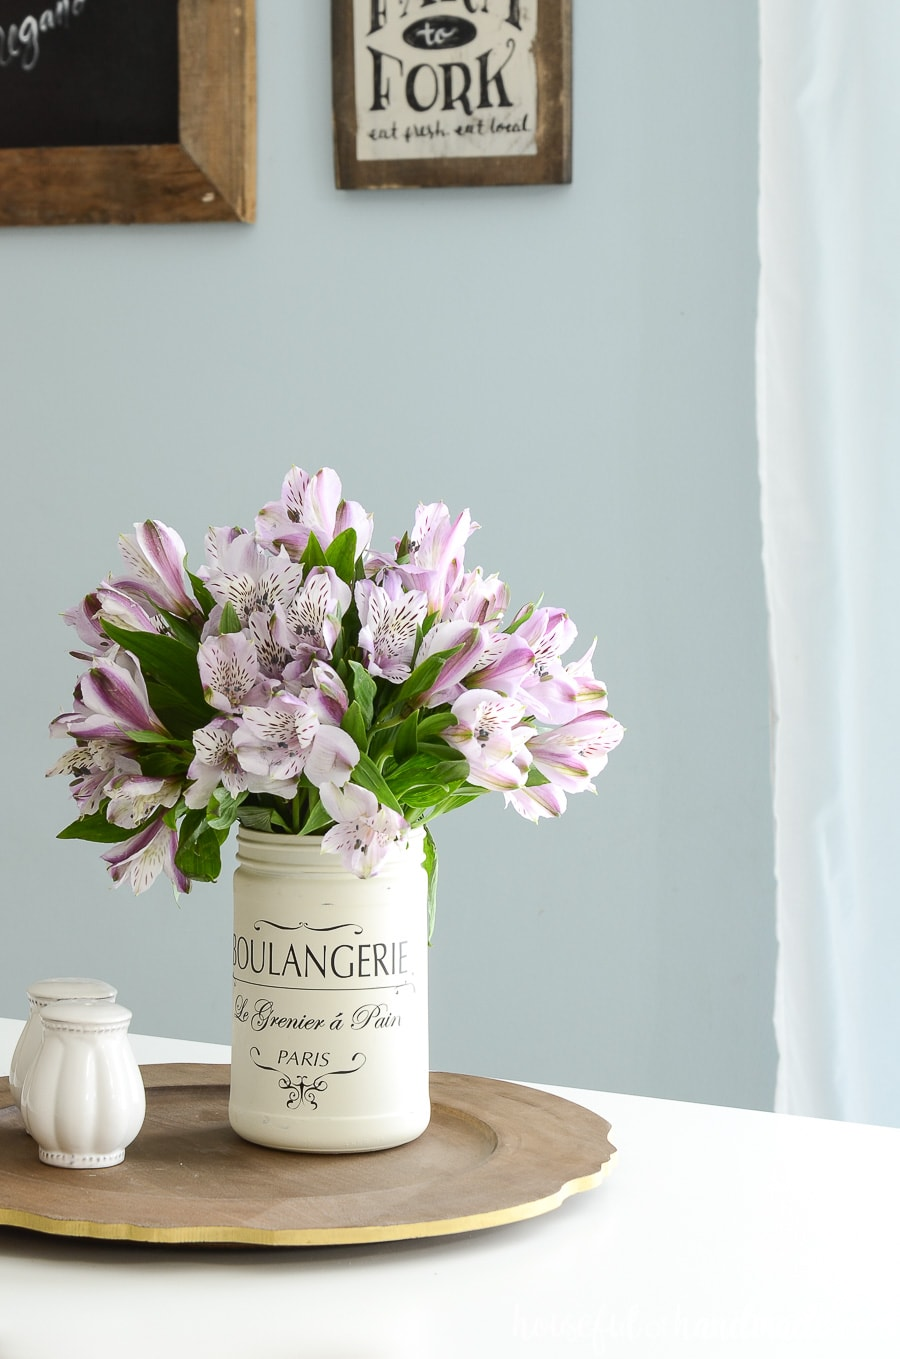 DIY farmhouse kitchen canister used as a vase with purple flowers sitting on an upcycled wood sign into a tray.